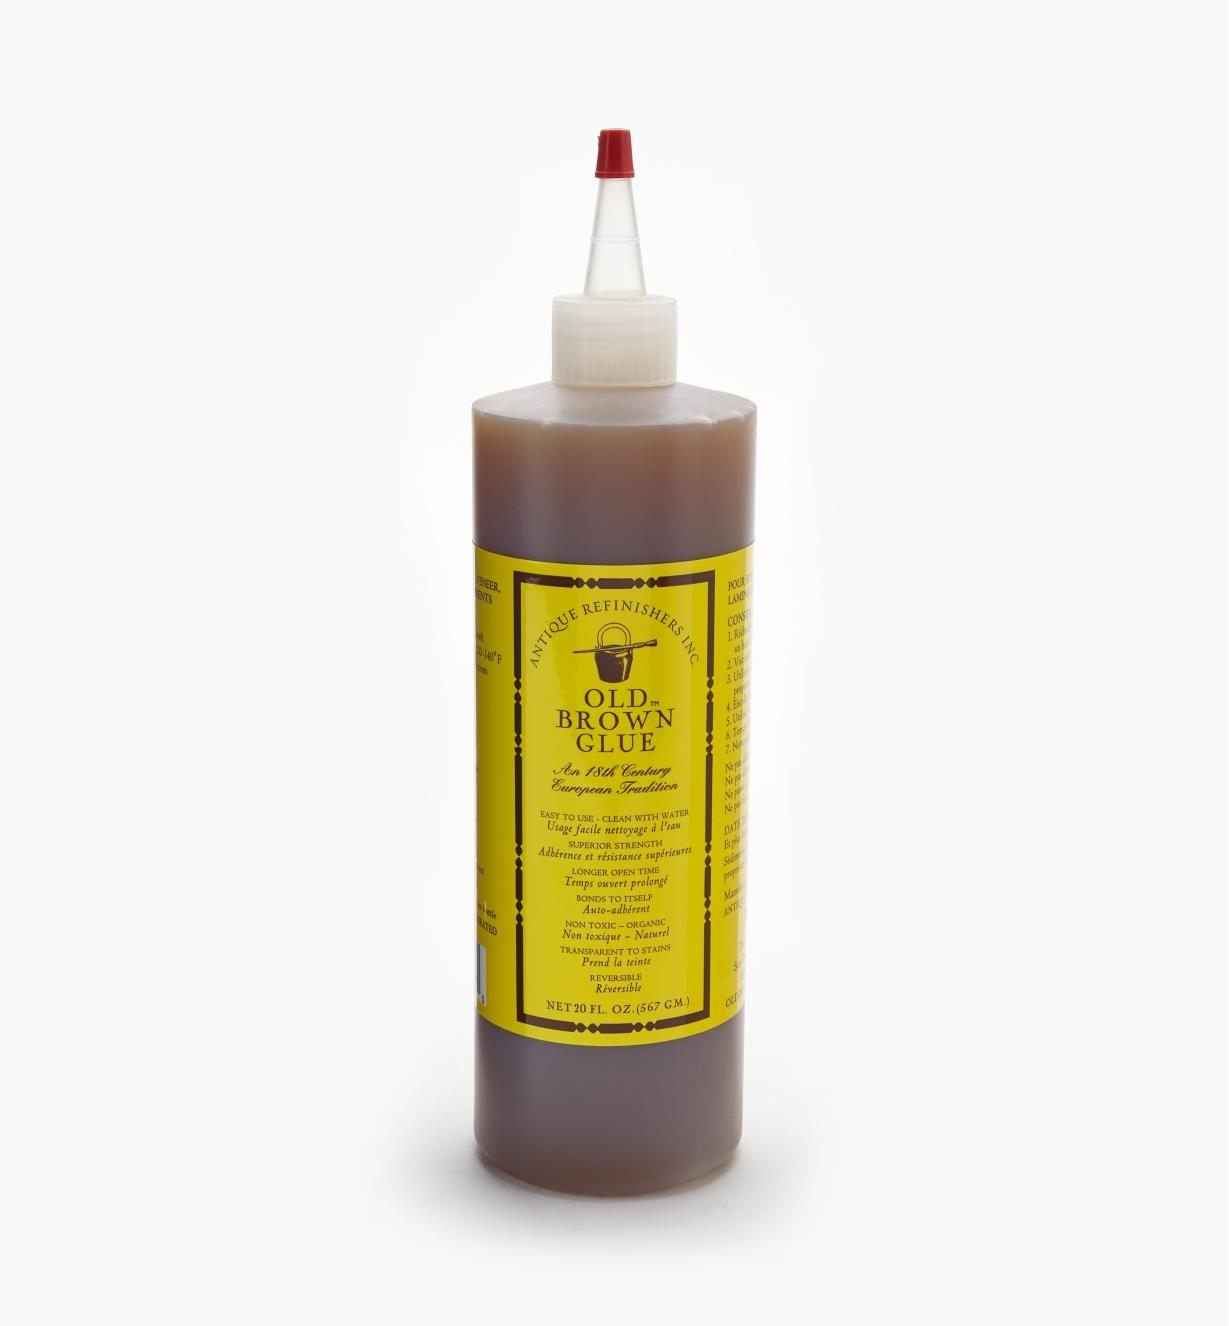 56K6012 - Old Brown Glue, 20 fl oz